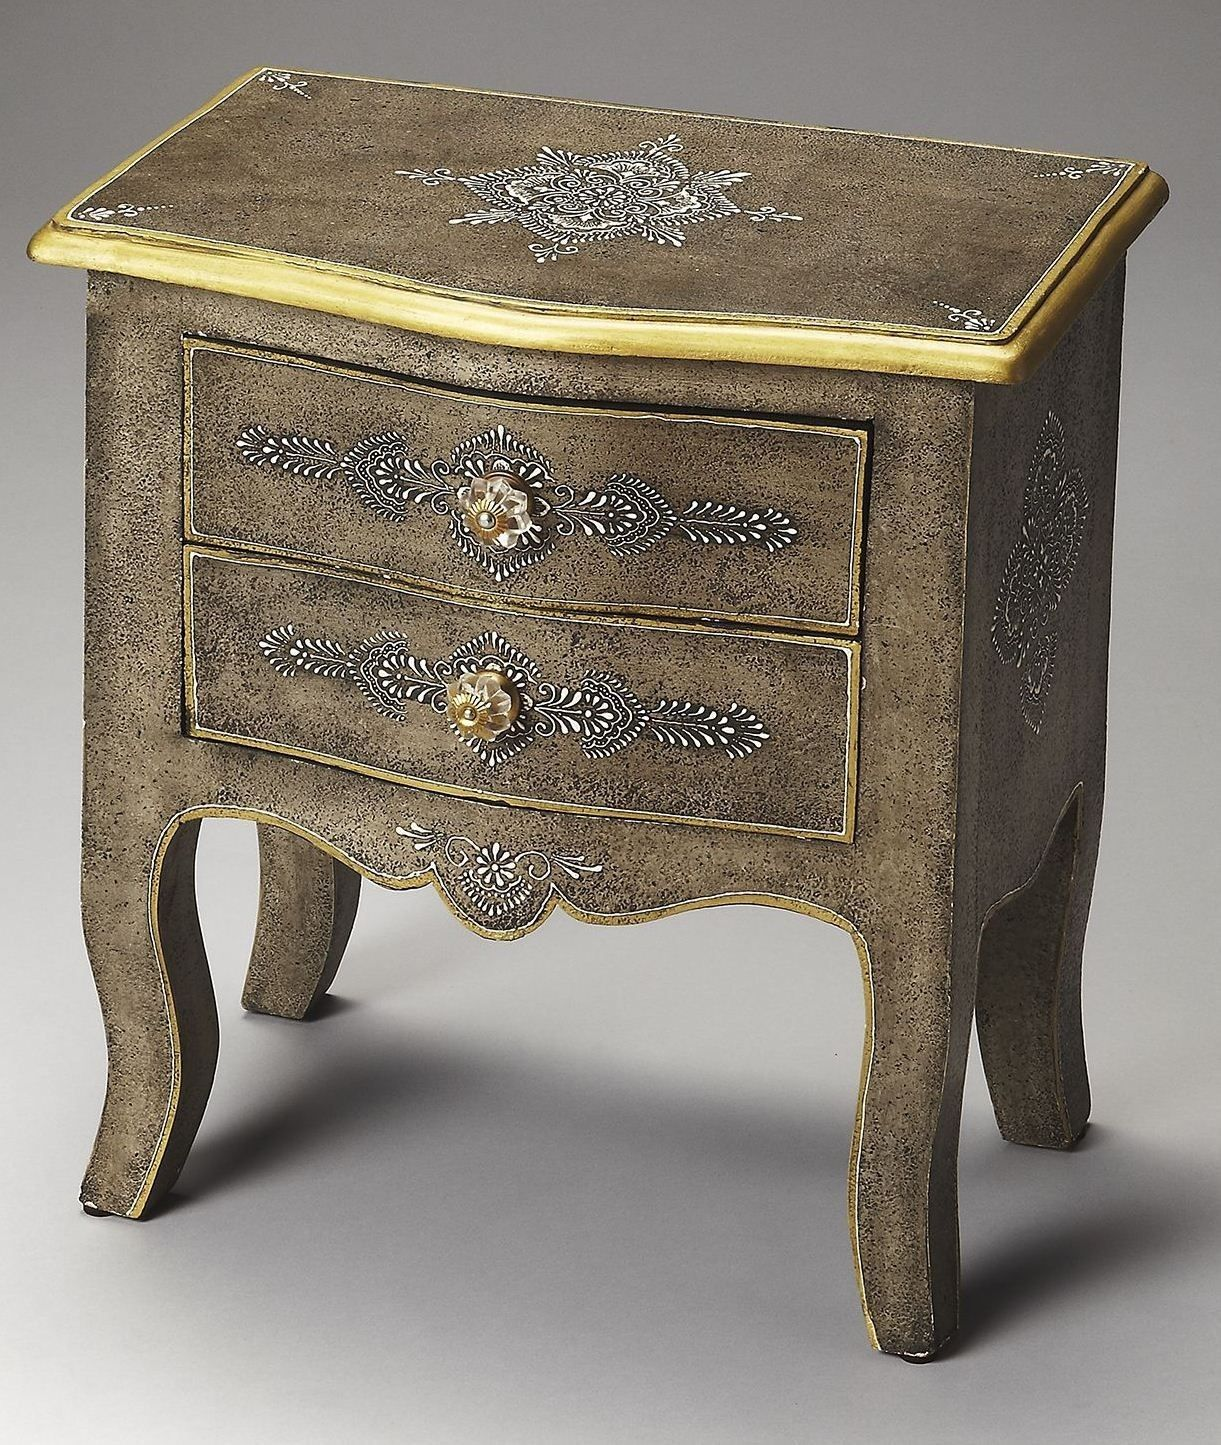 this two drawer hand painted accent chest made select tables chests sheesham wood solids gold trimmed top glass pull plus handcarved legs and apron dining table clearance modern